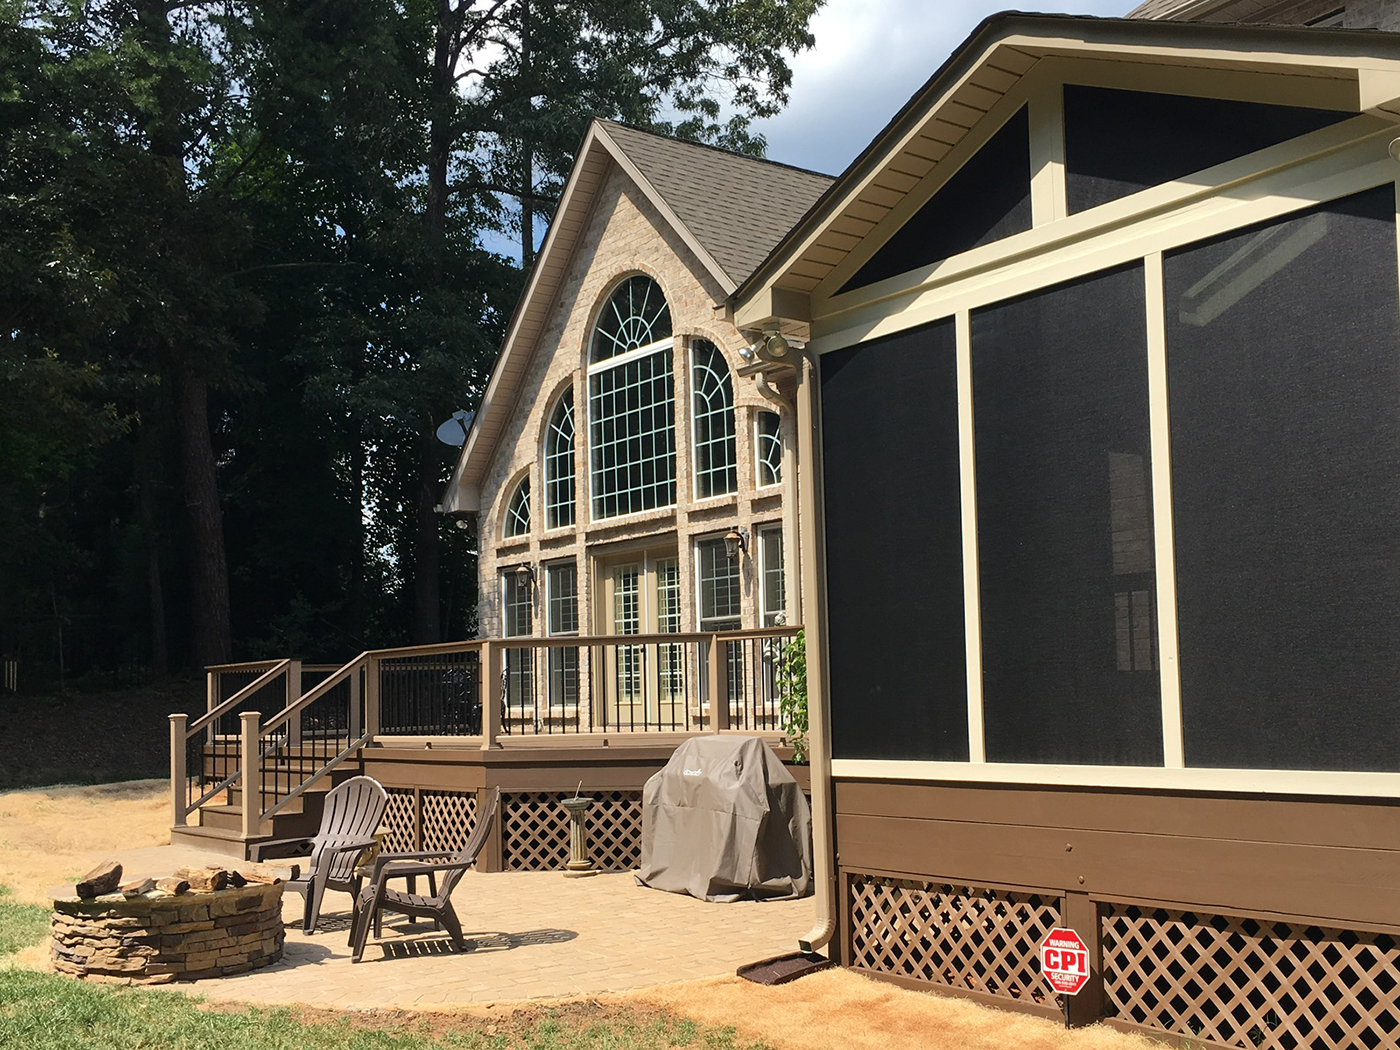 Incroyable Trex Low Maintenance Deck, Screened Porch, Patio And Fire Pit In Eppington  South